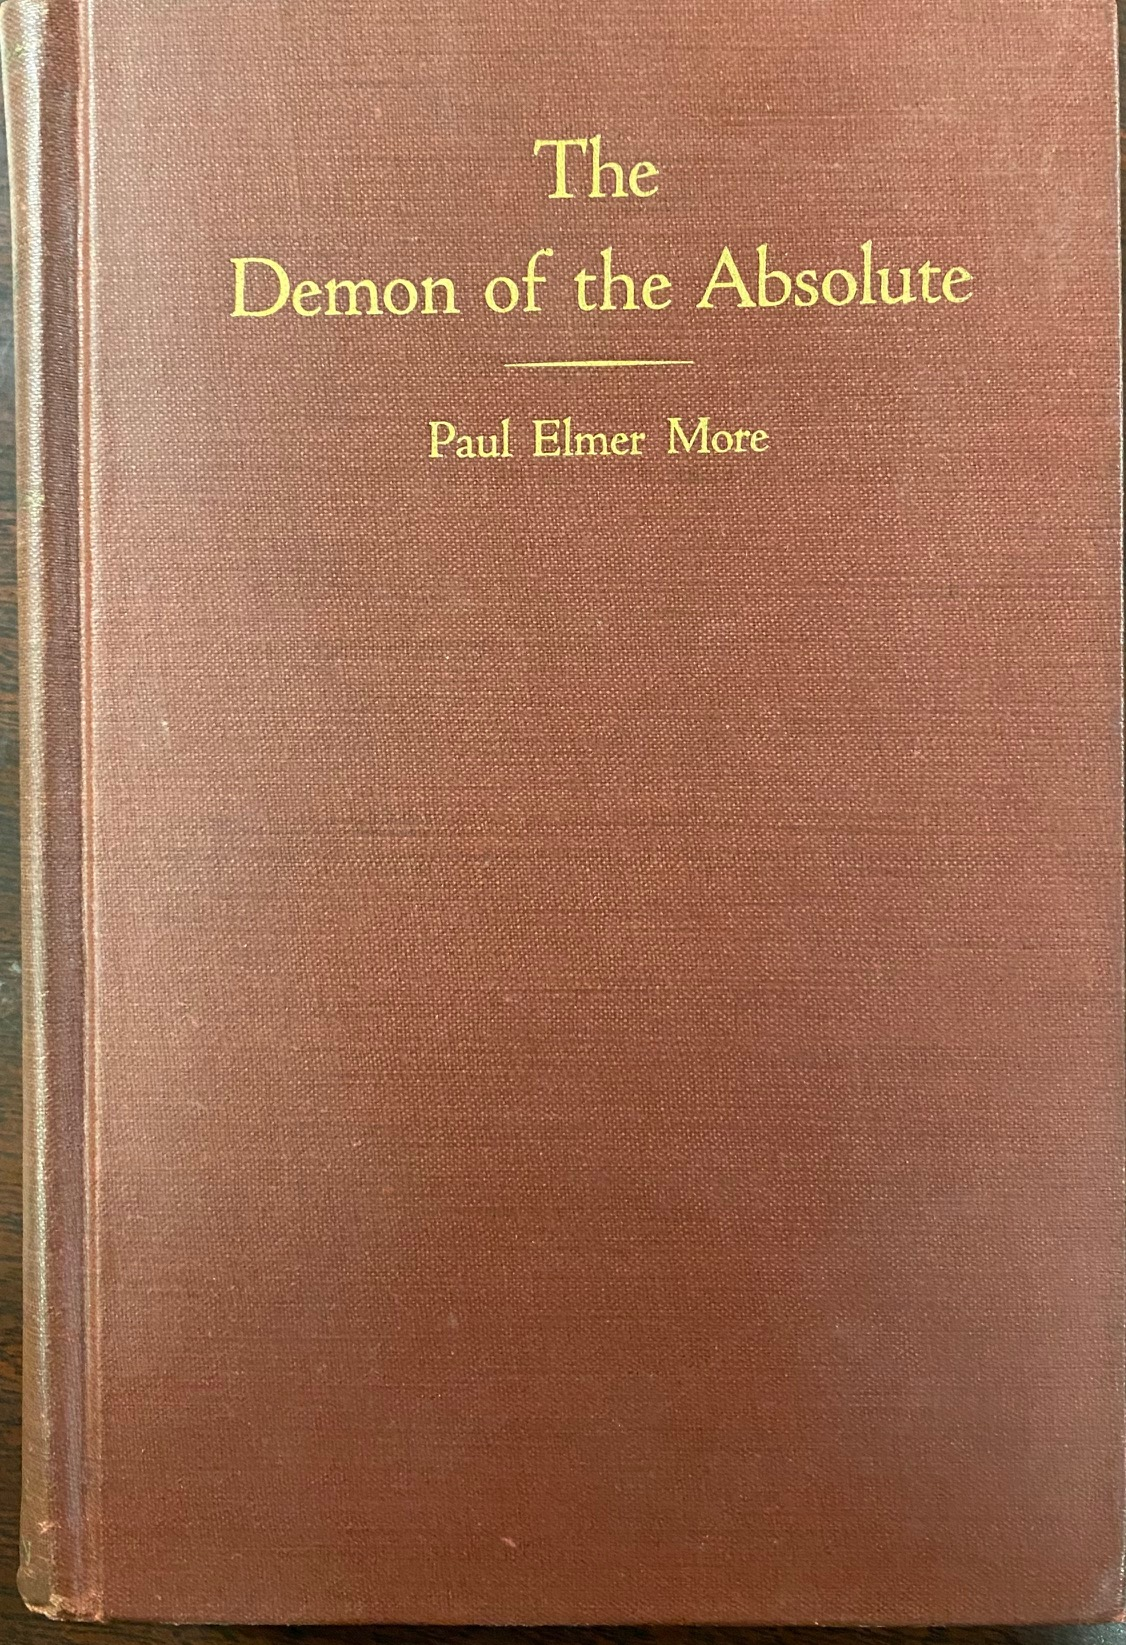 Image for The Demon of the Absolute (New Shelburne Essays, Volume 1)